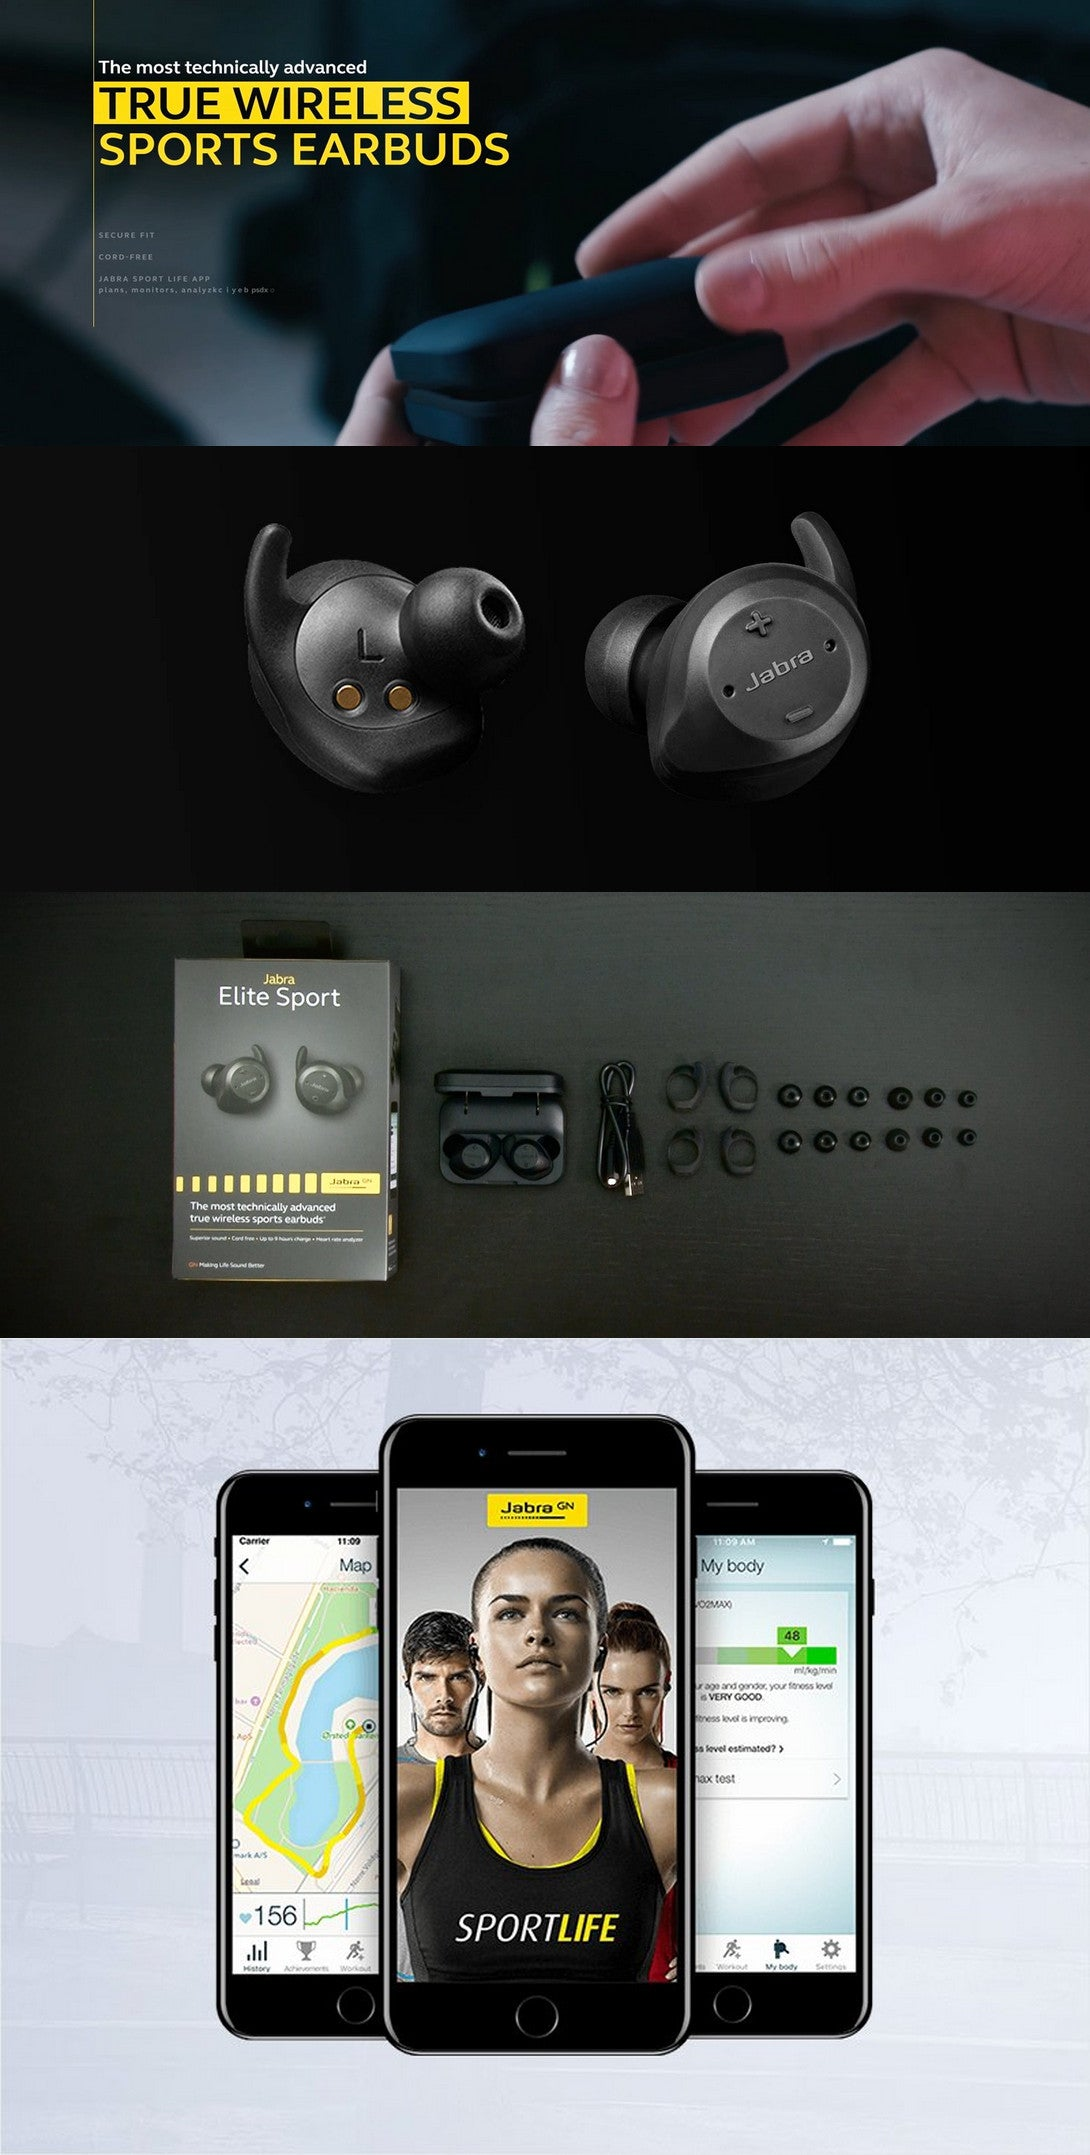 Jabra Elite Sport True Wireless Sports Earbuds